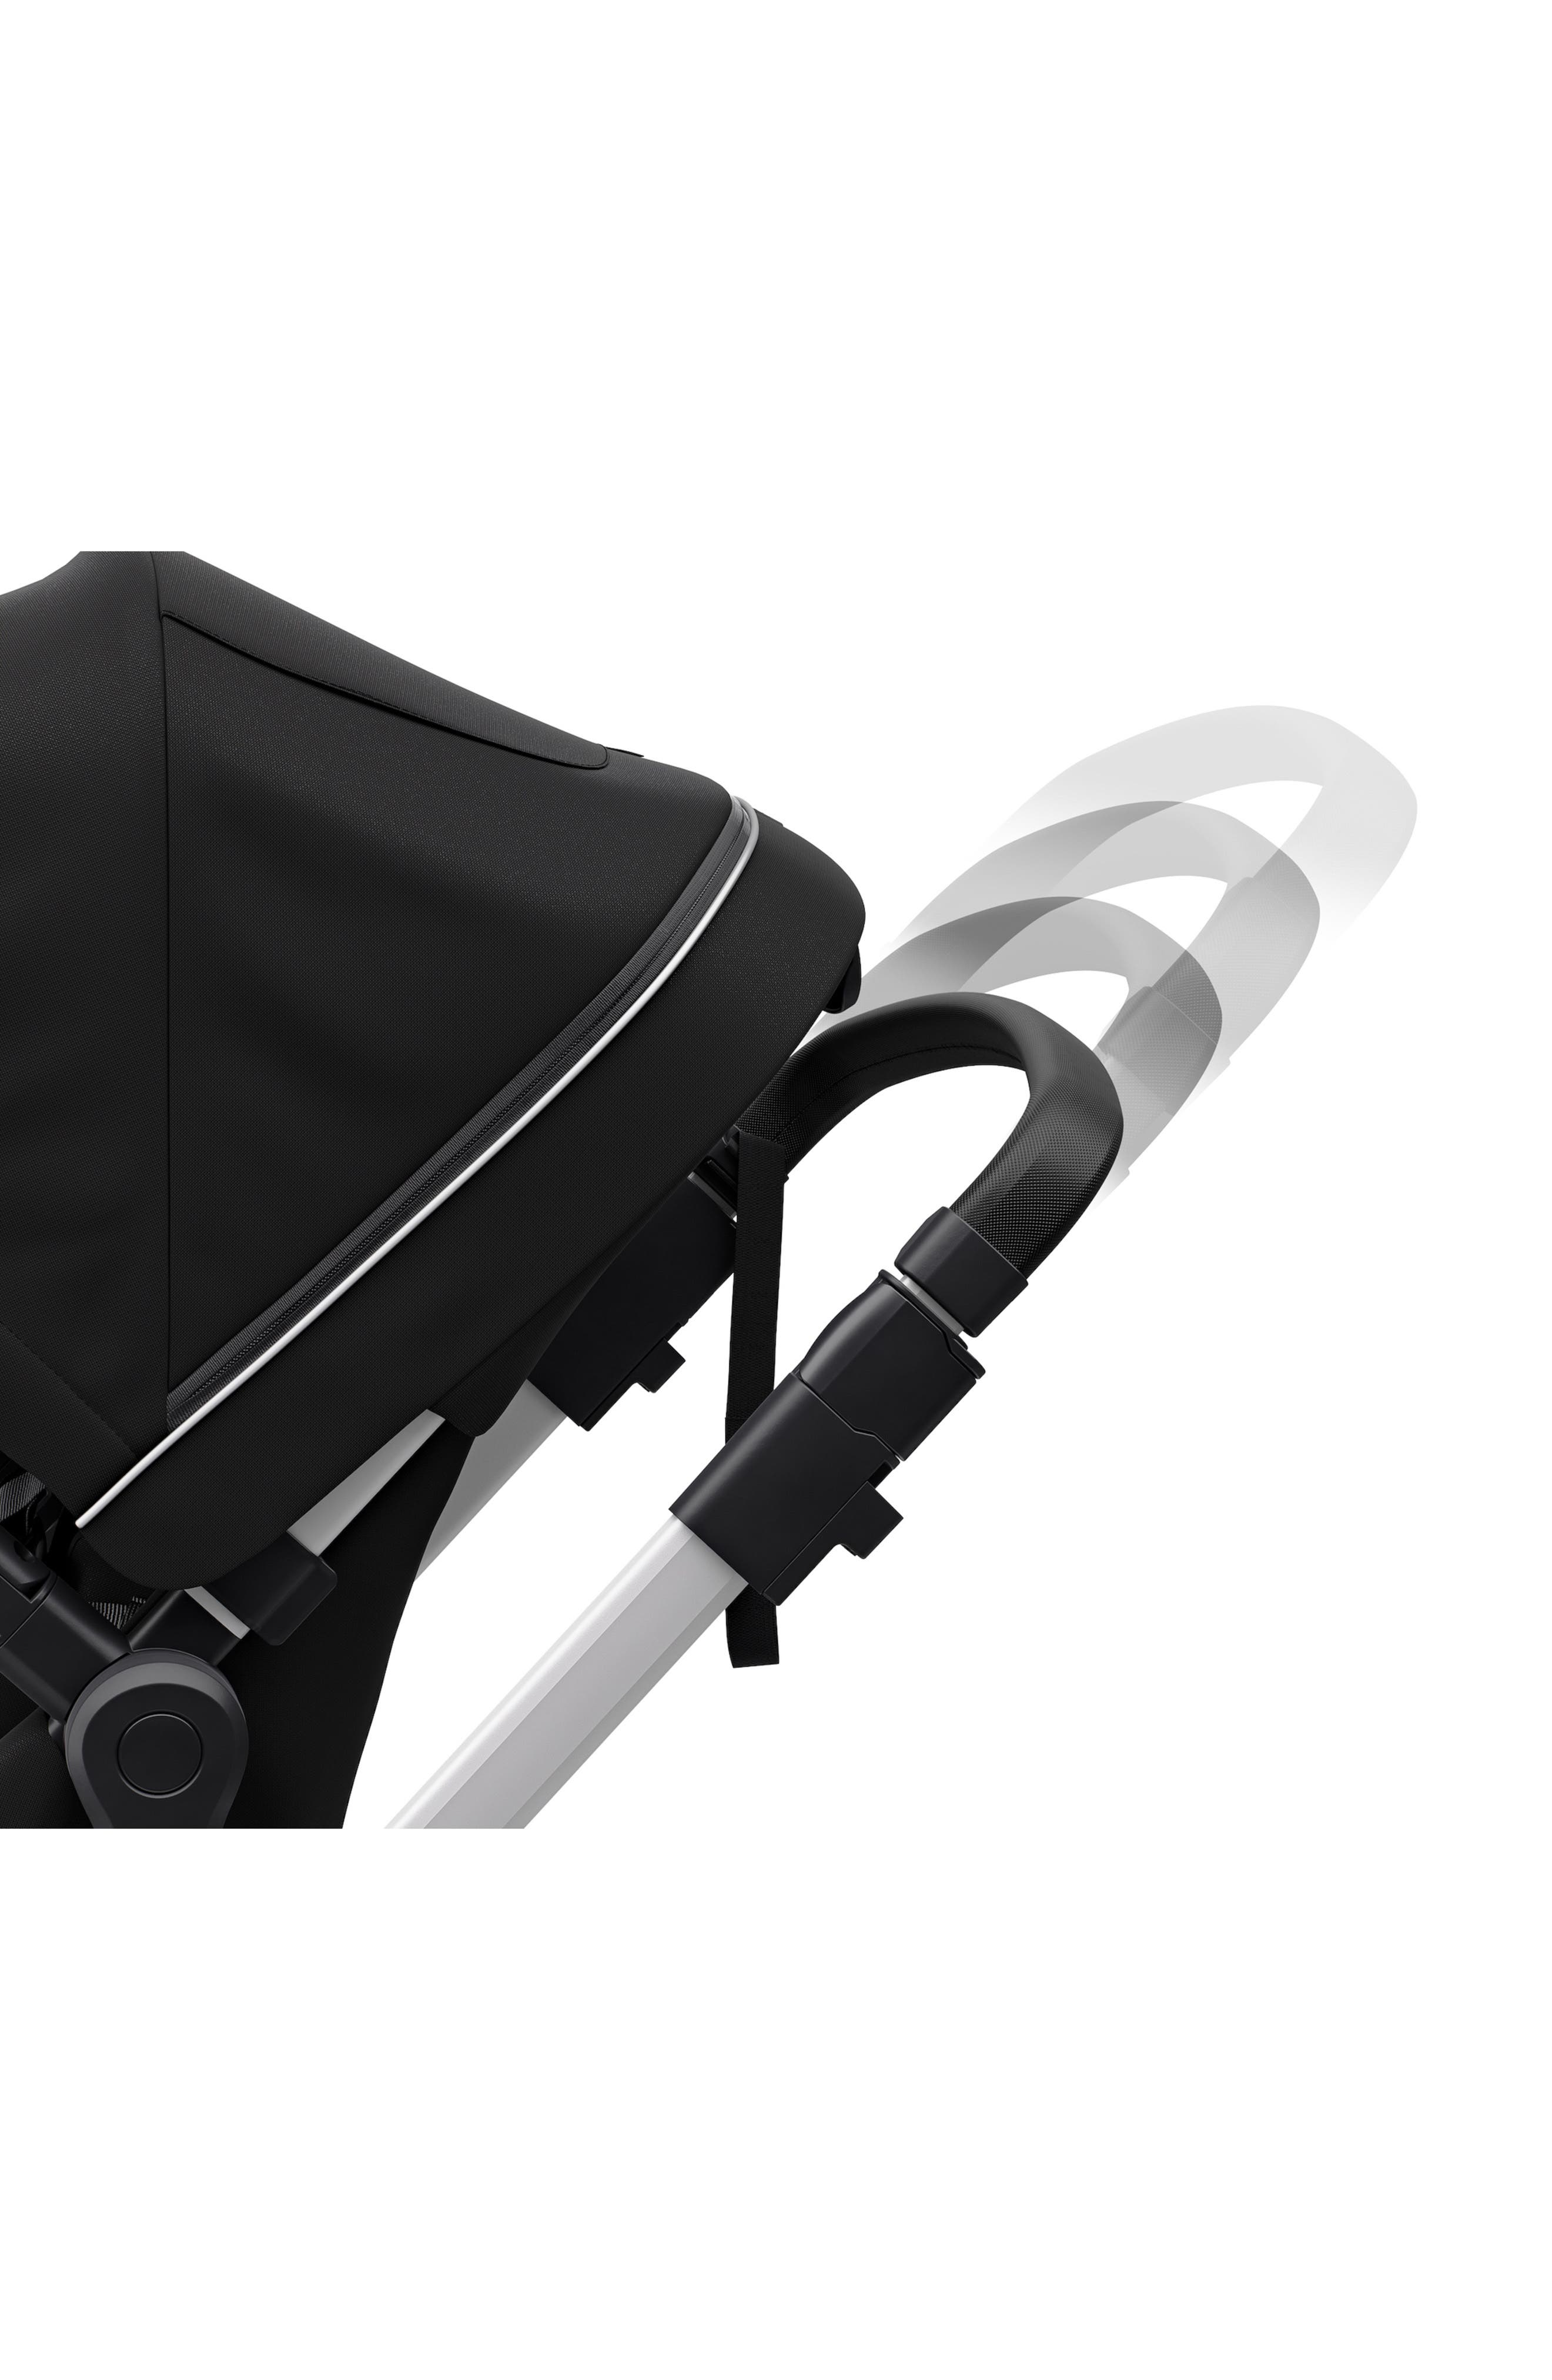 2018 Sleek City Stroller,                             Alternate thumbnail 8, color,                             BLACK